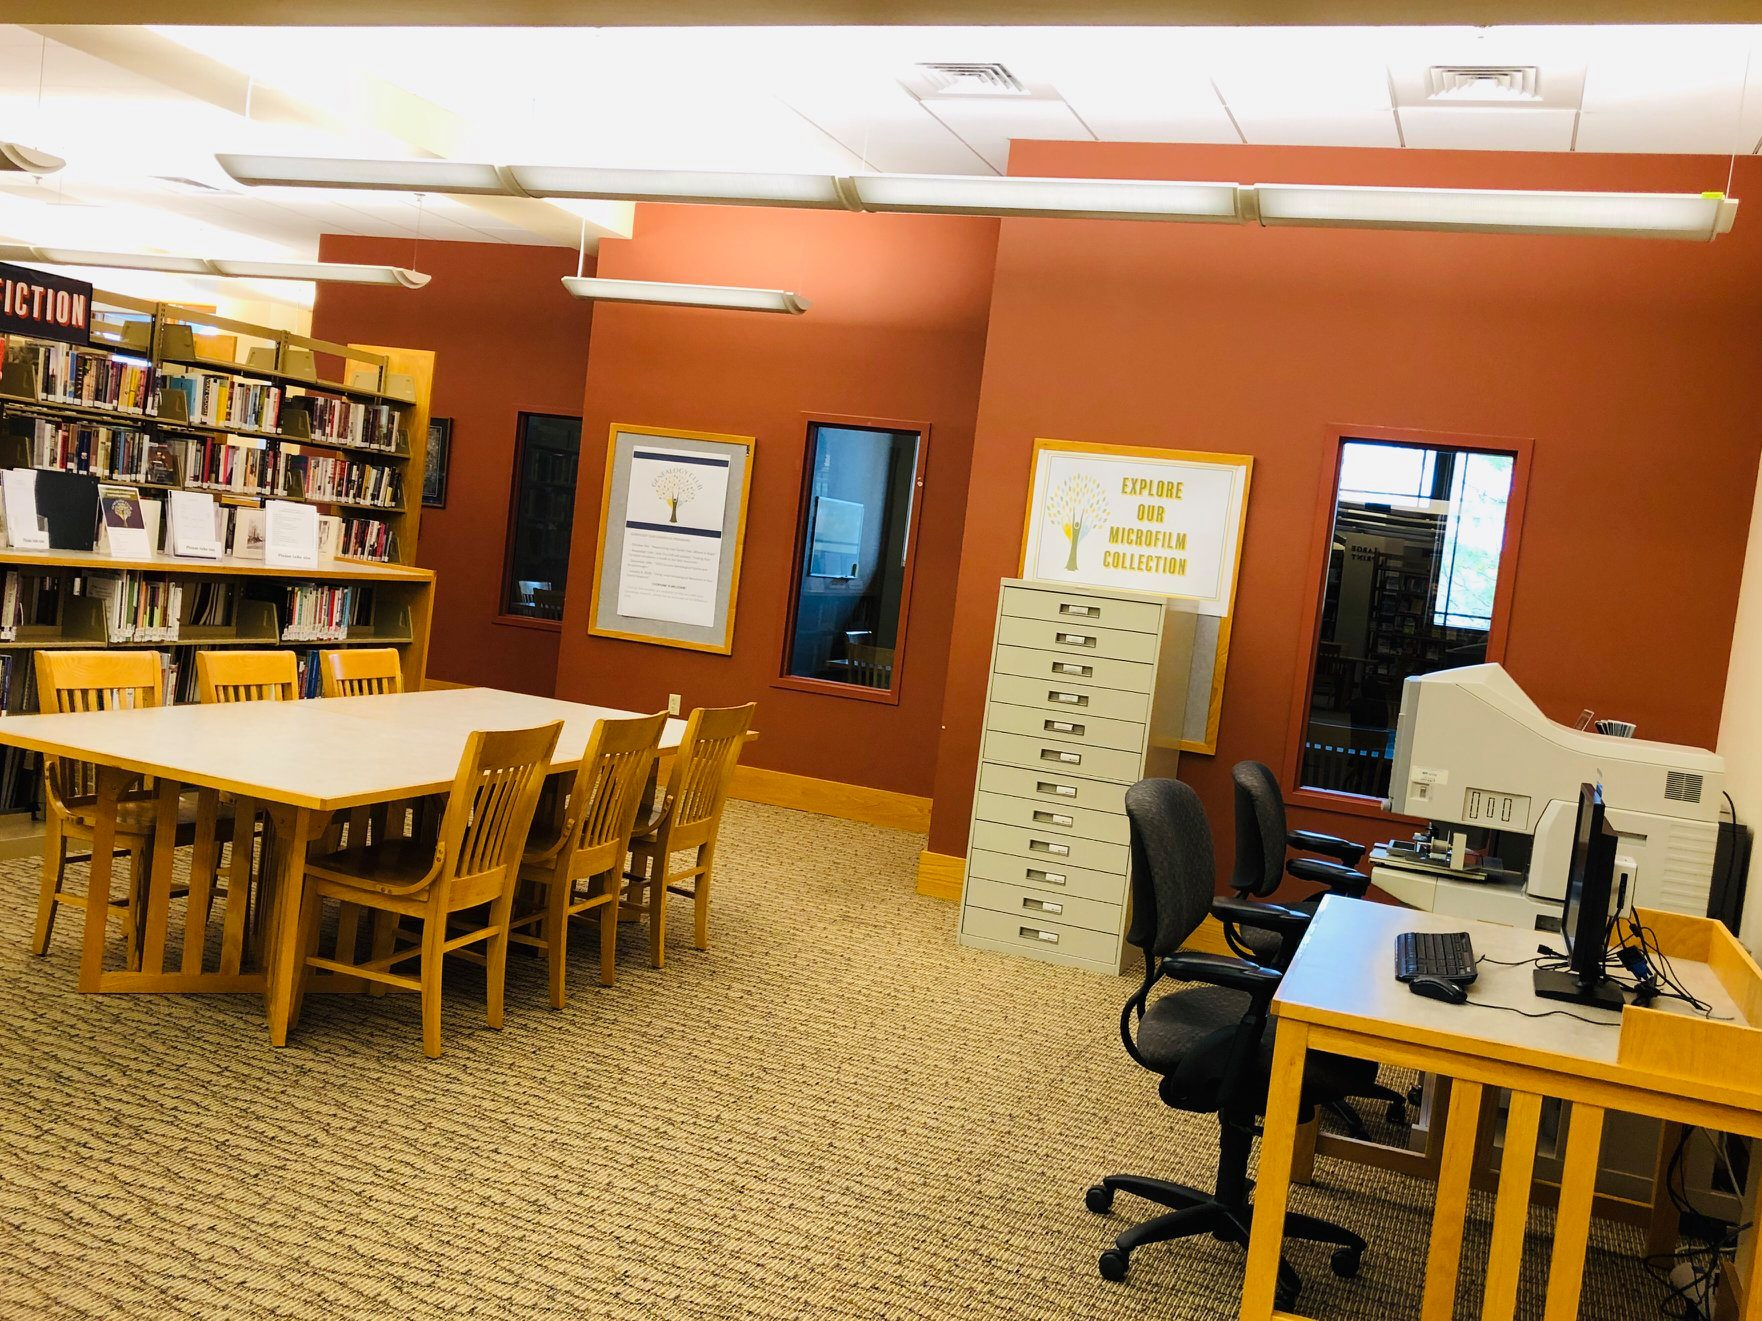 New Genealogy and Local History Area upstairs in front of study rooms. Photo shows area with dedicated computer, microfilm cabinet and reader to the right; study table with six seats in the middle; and low shelves of local history and genealogy books and other resources on the left.